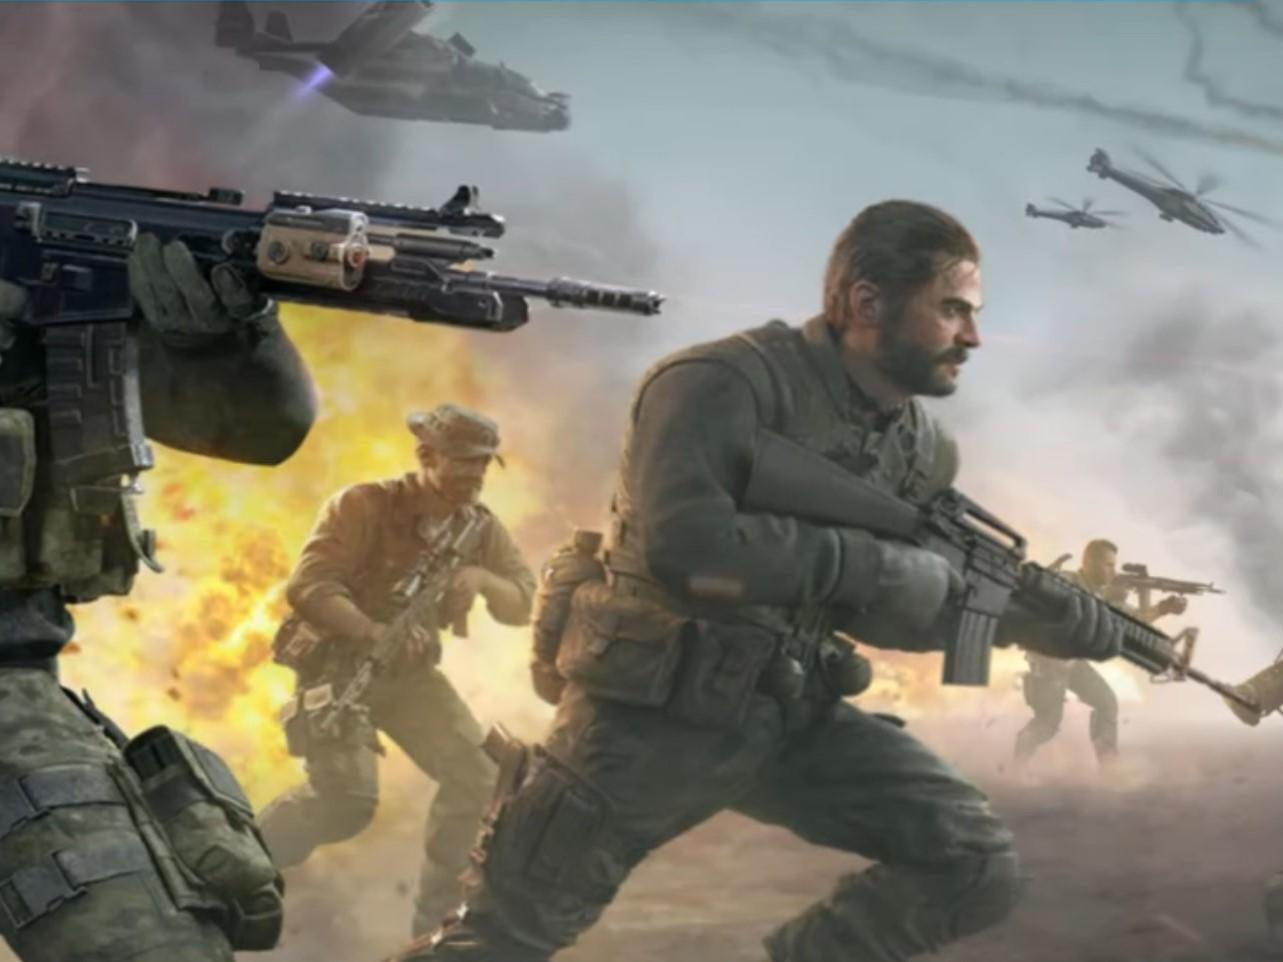 Call of Duty down: Game not working for users around the world thumbnail